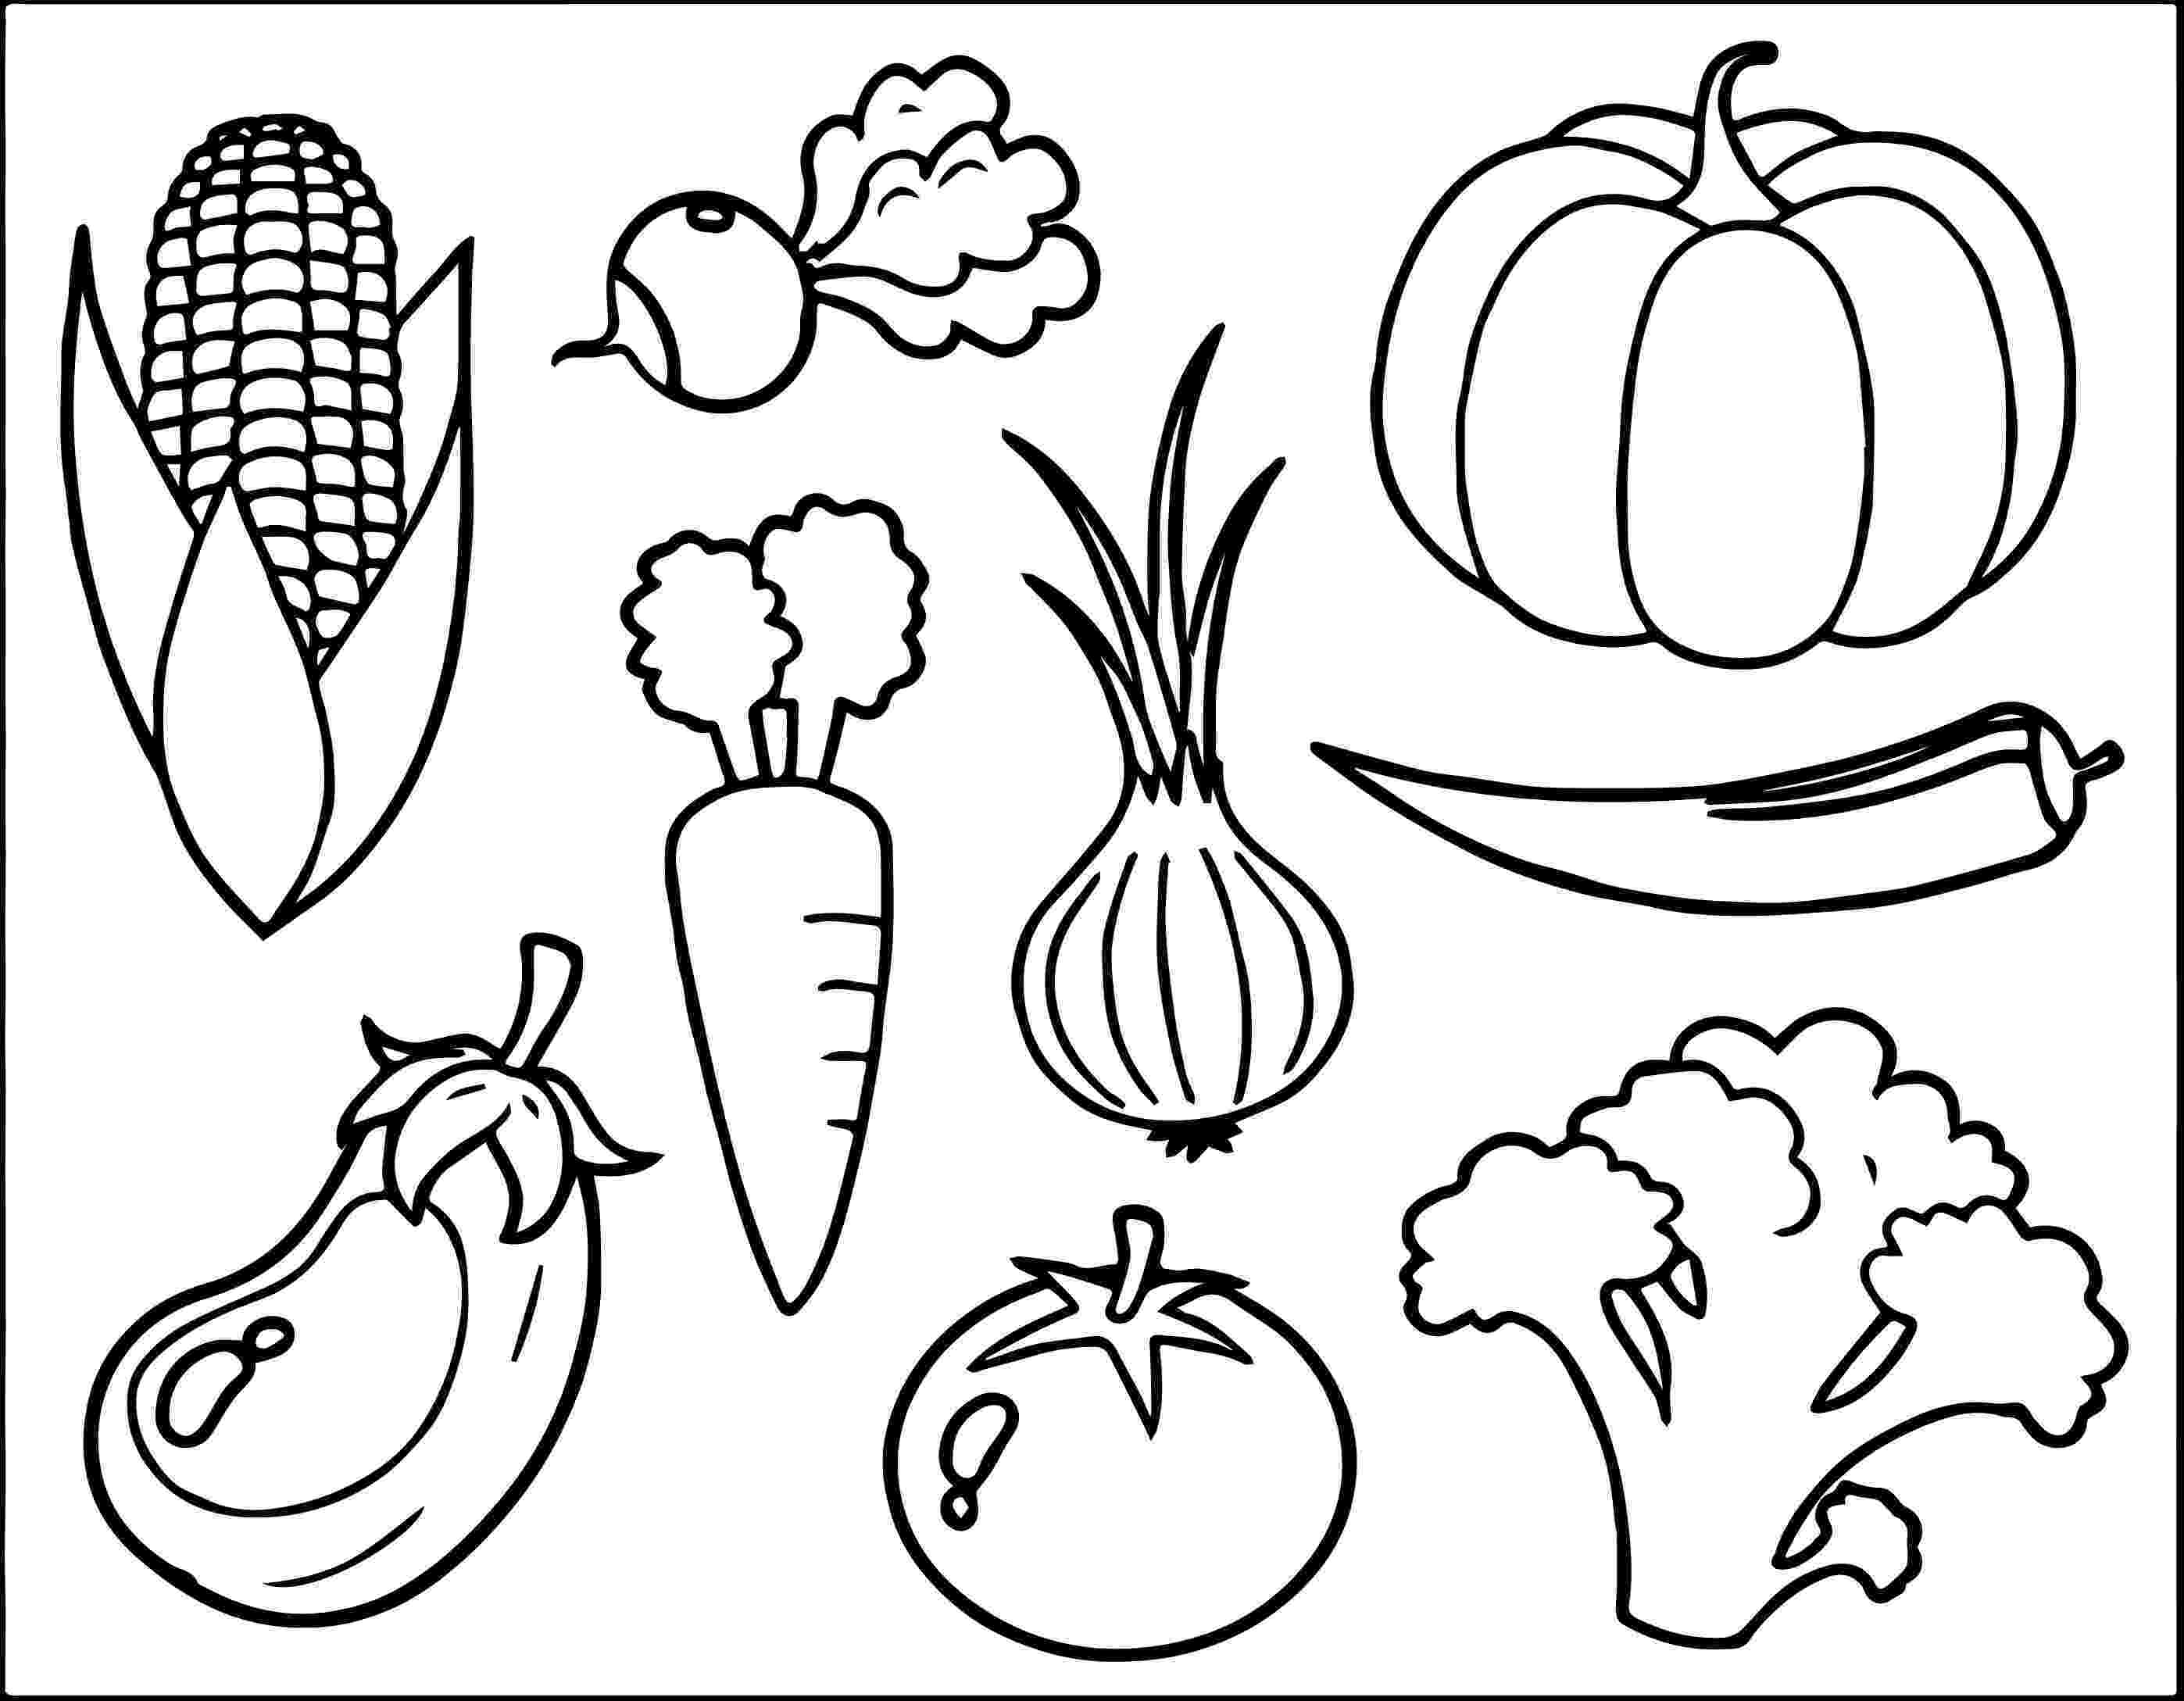 fruits coloring sheets free vegetable coloring page wecoloringpagecom fruits sheets coloring